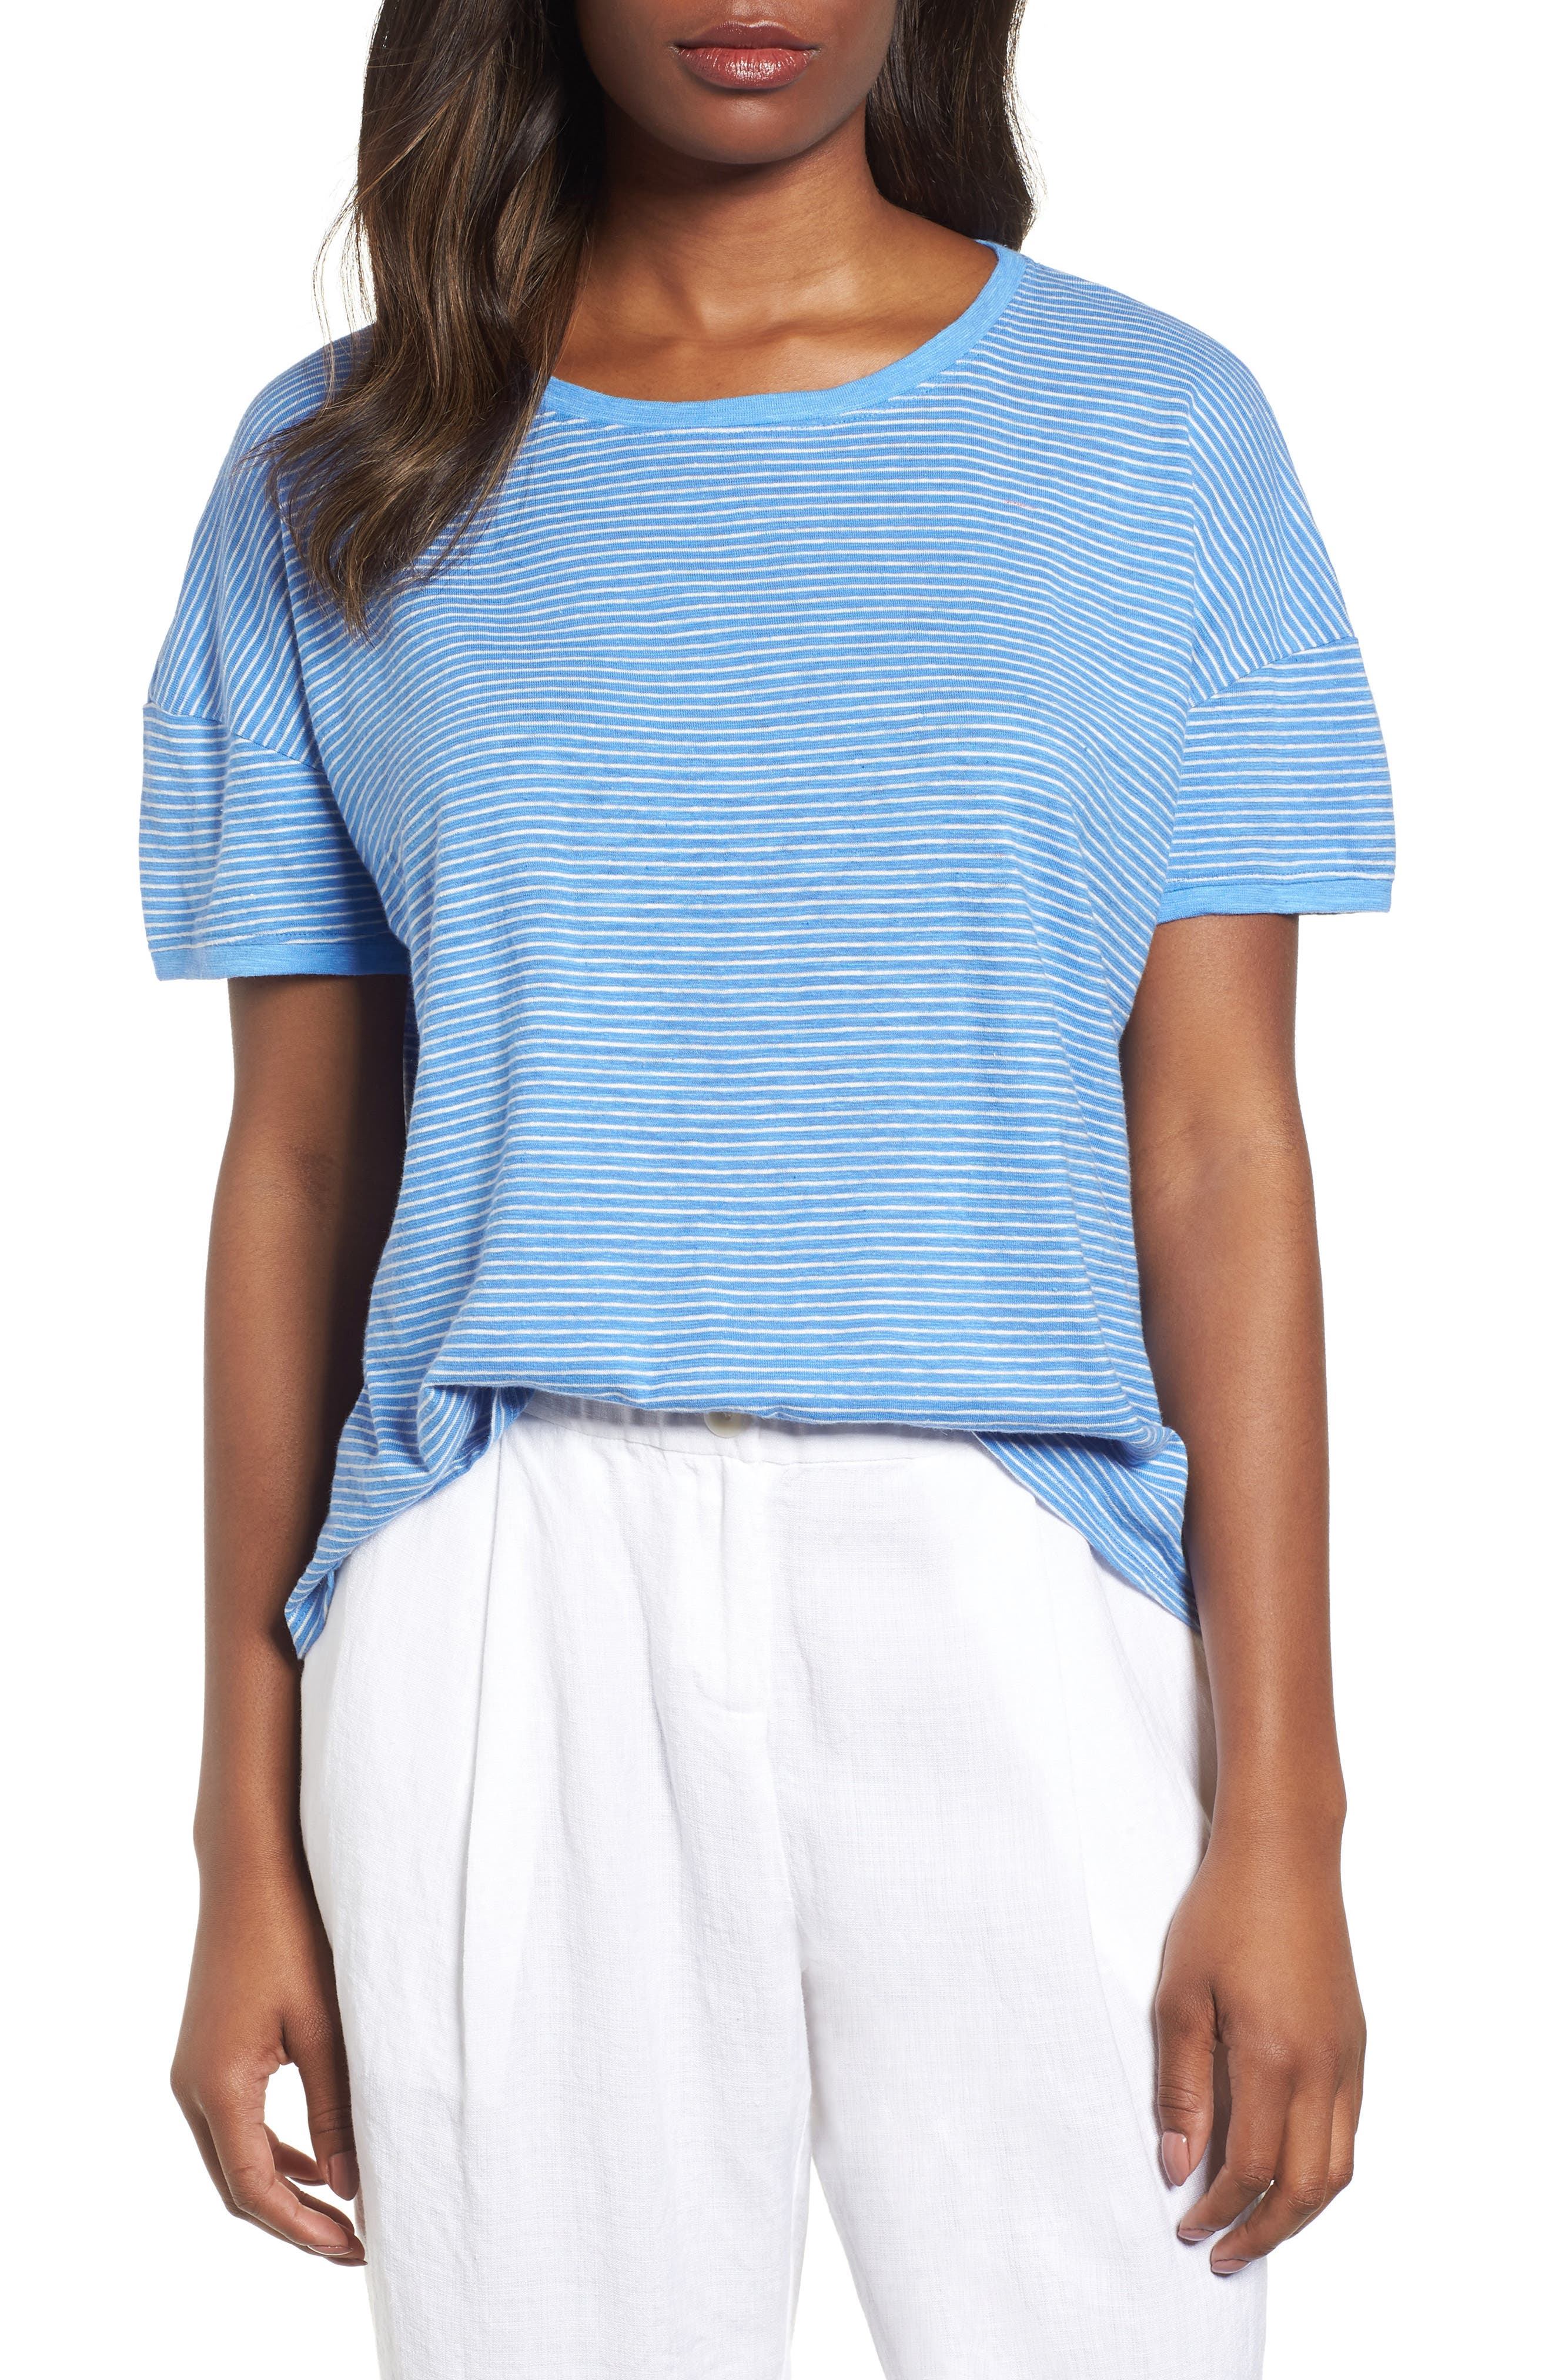 Eileen Fisher Stripe Boxy Hemp & Organic Cotton Tee